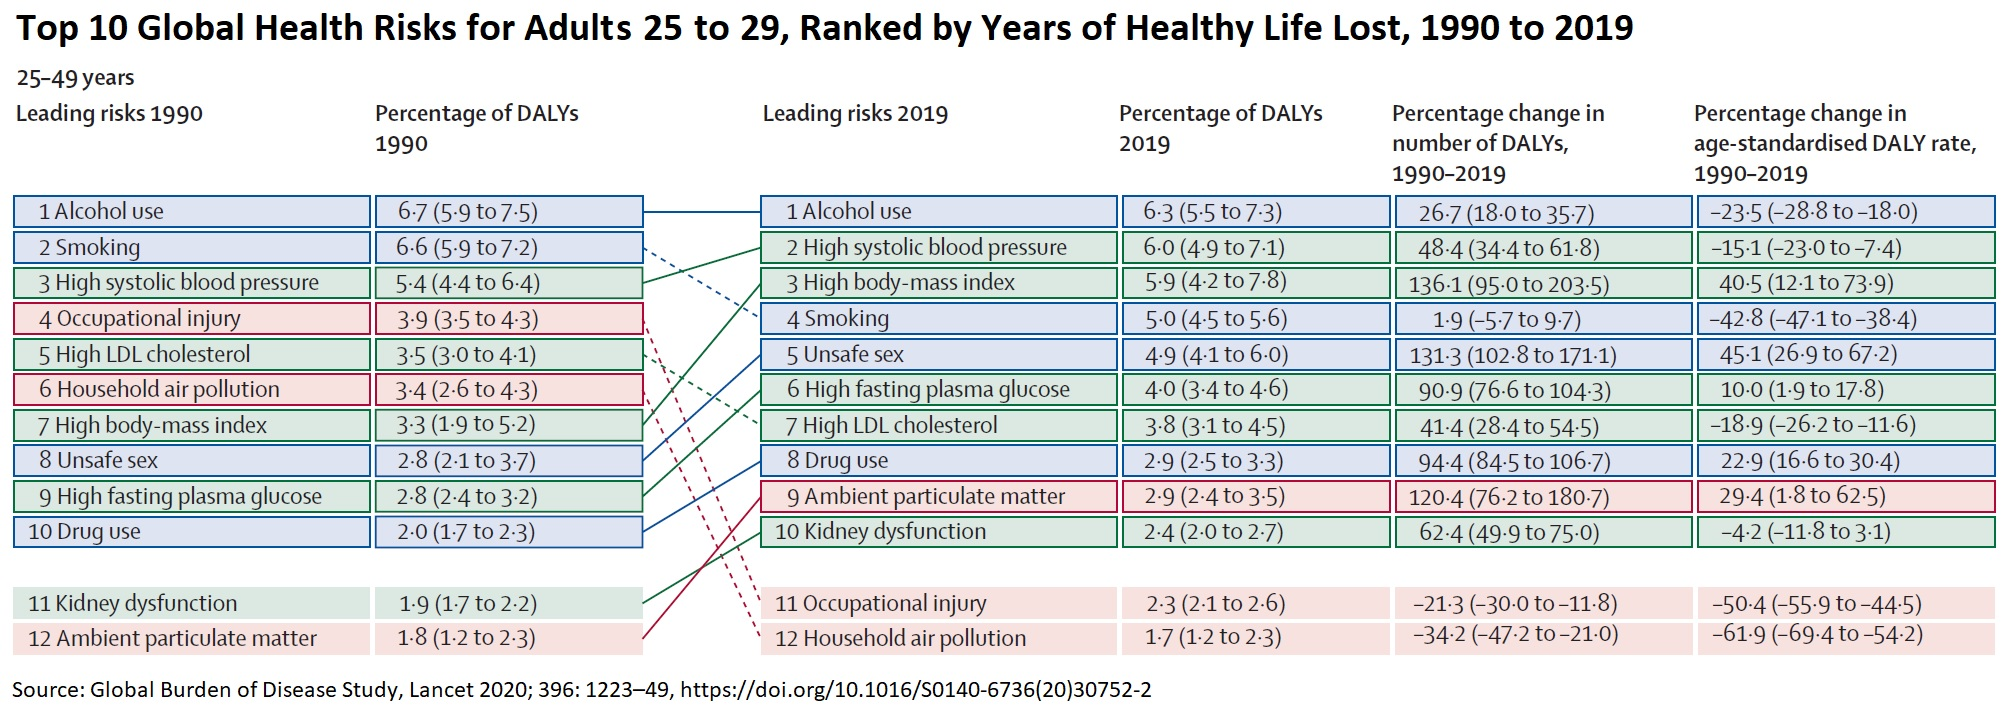 Top 10 Global Health Risks, Adults 25-49